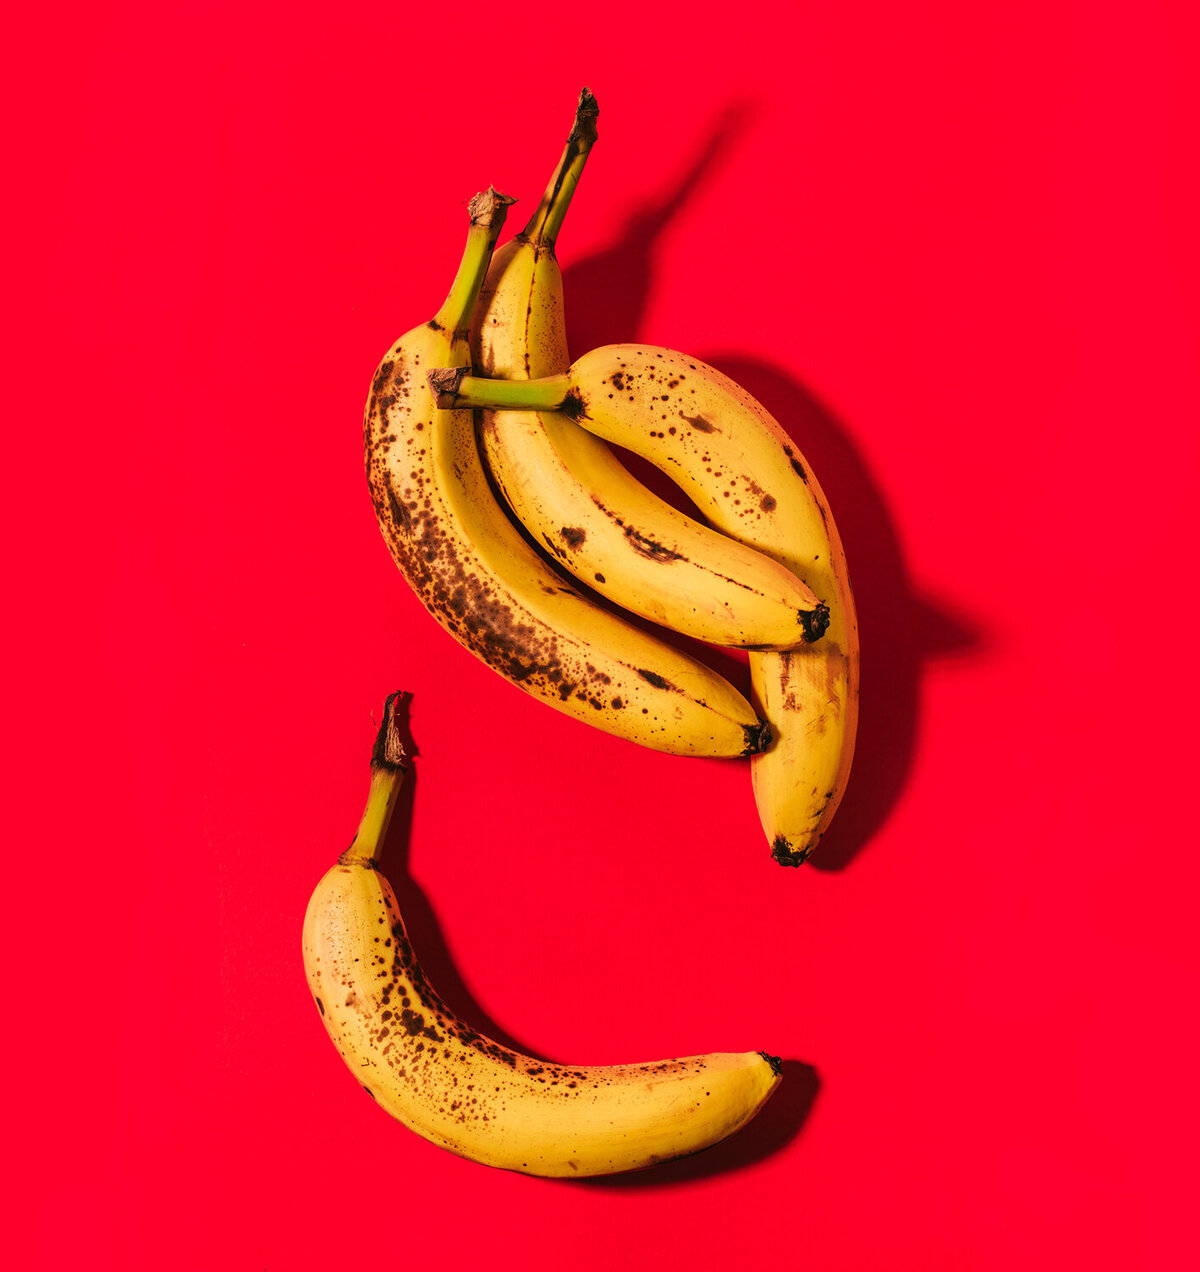 los angeles food photographer produce photography bananas